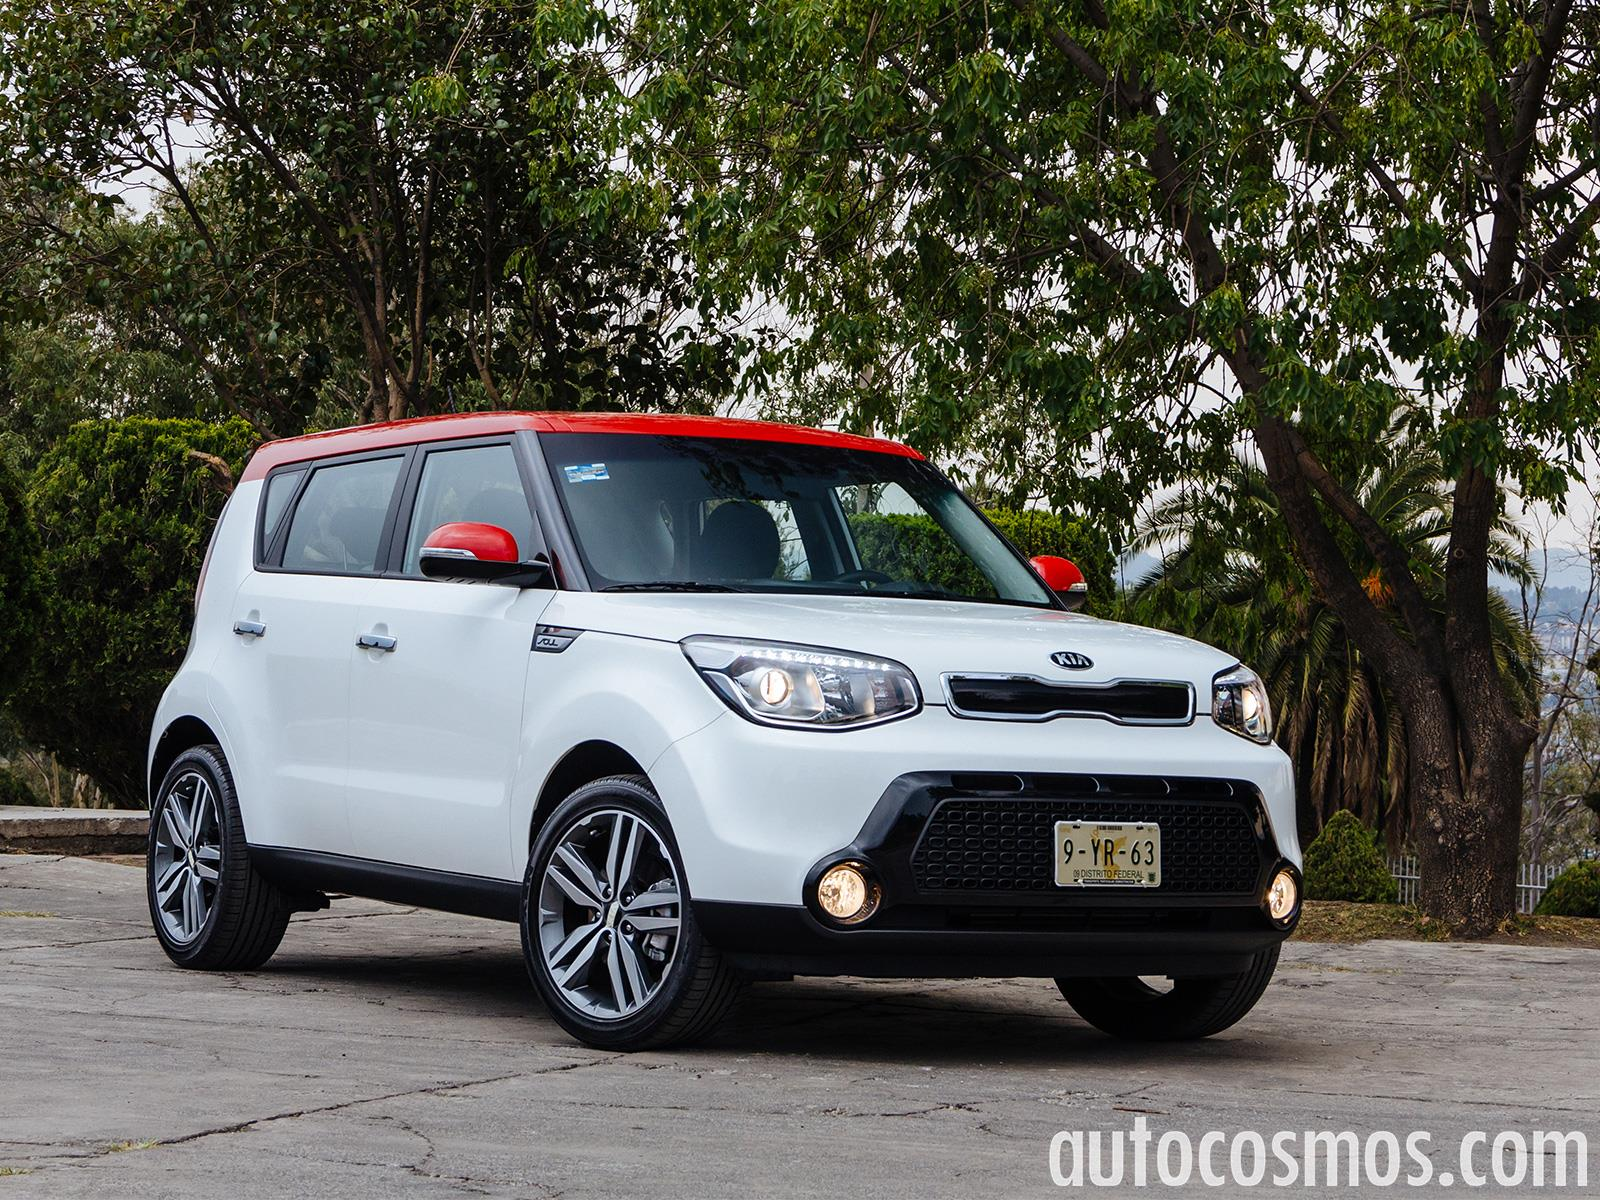 trax with Kia Soul 2016 A Prueba on 1 Phasen HV Stromschienen 10013 277 296 in addition Chevrolet Tracker 2017 Visual Motor Turbo also Rabbithills as well Watch in addition Energetic.